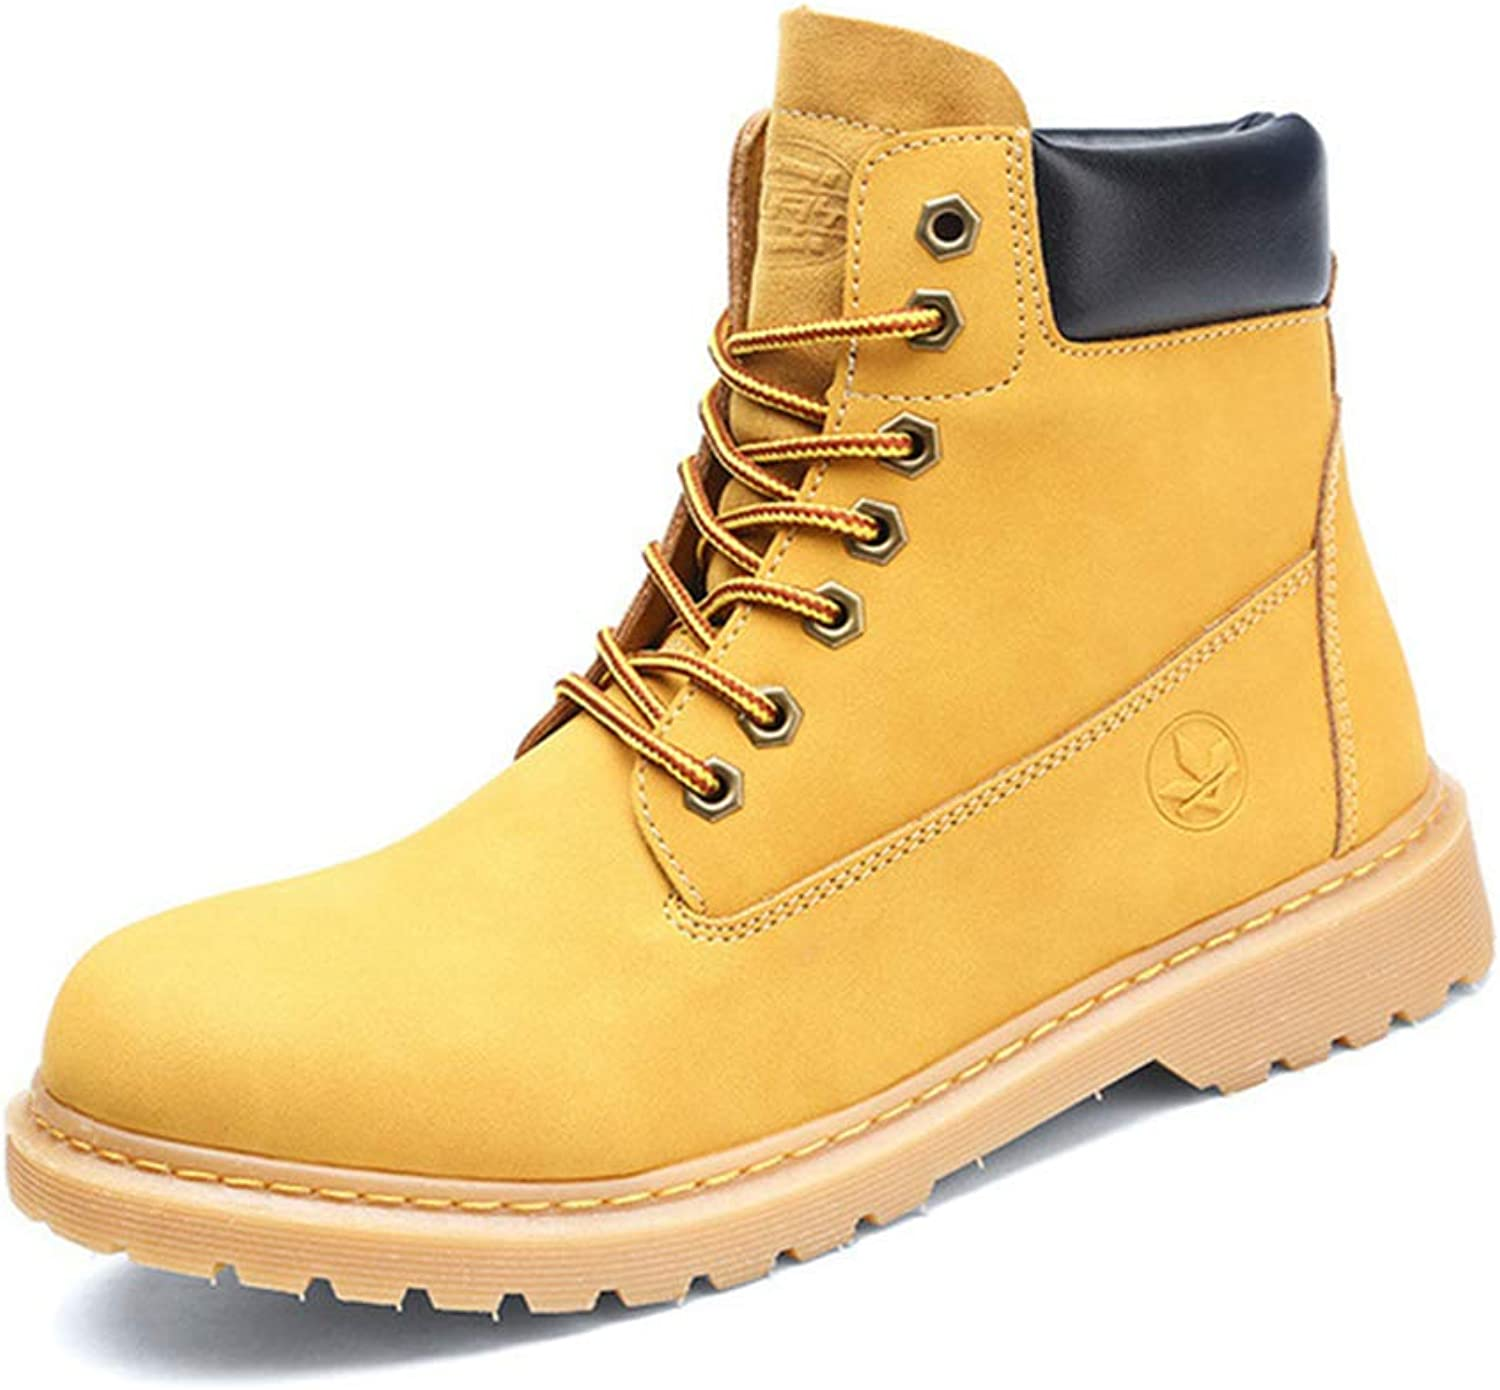 KAOKAOO Martin Boots Ankle Boots Outdoor Retro Couple Models